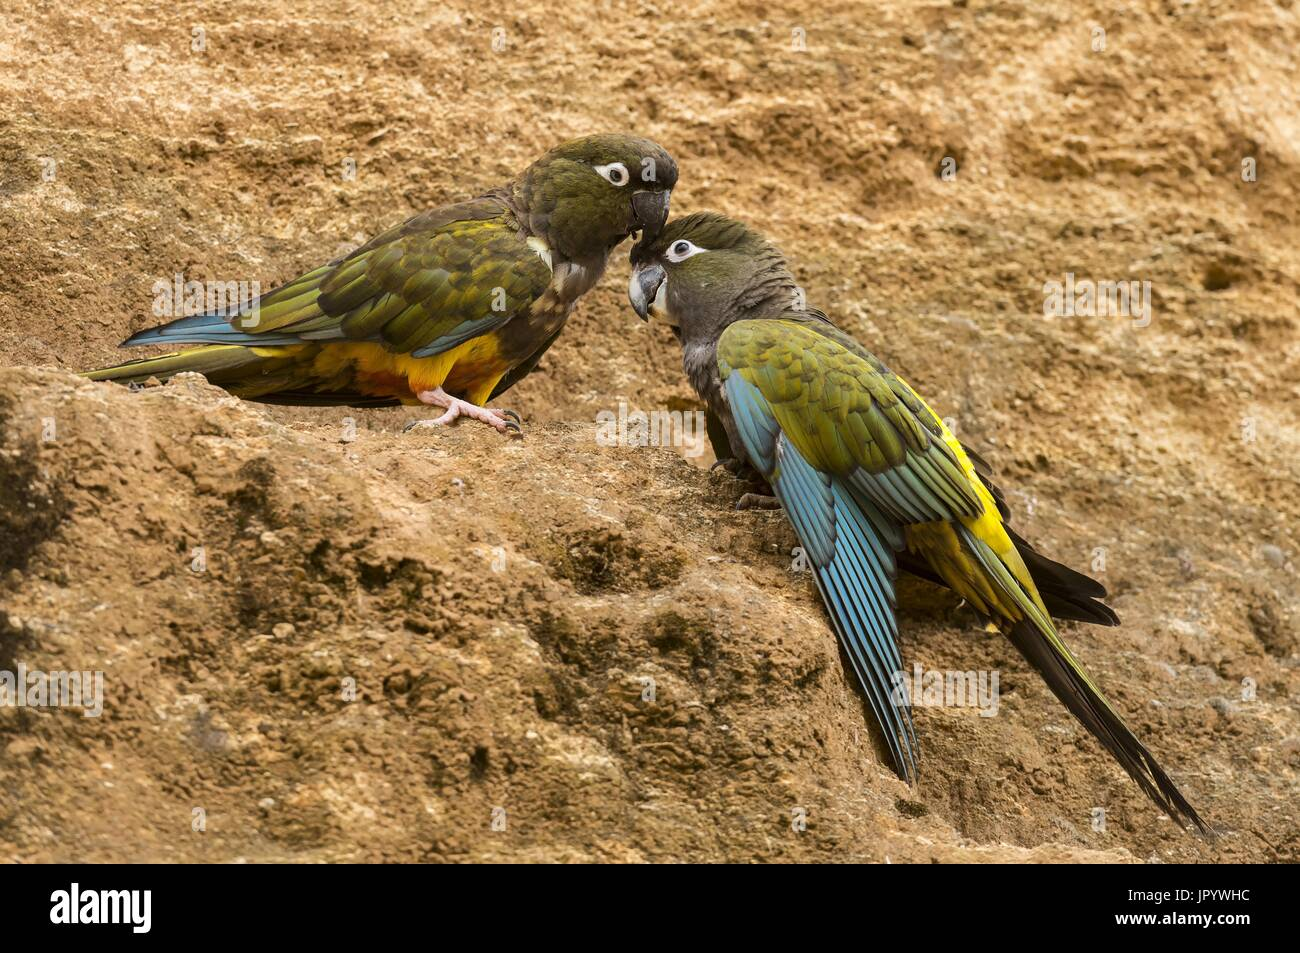 Burrowing Parrot (Cyanoliseus patagonus) on cliff - Stock Image